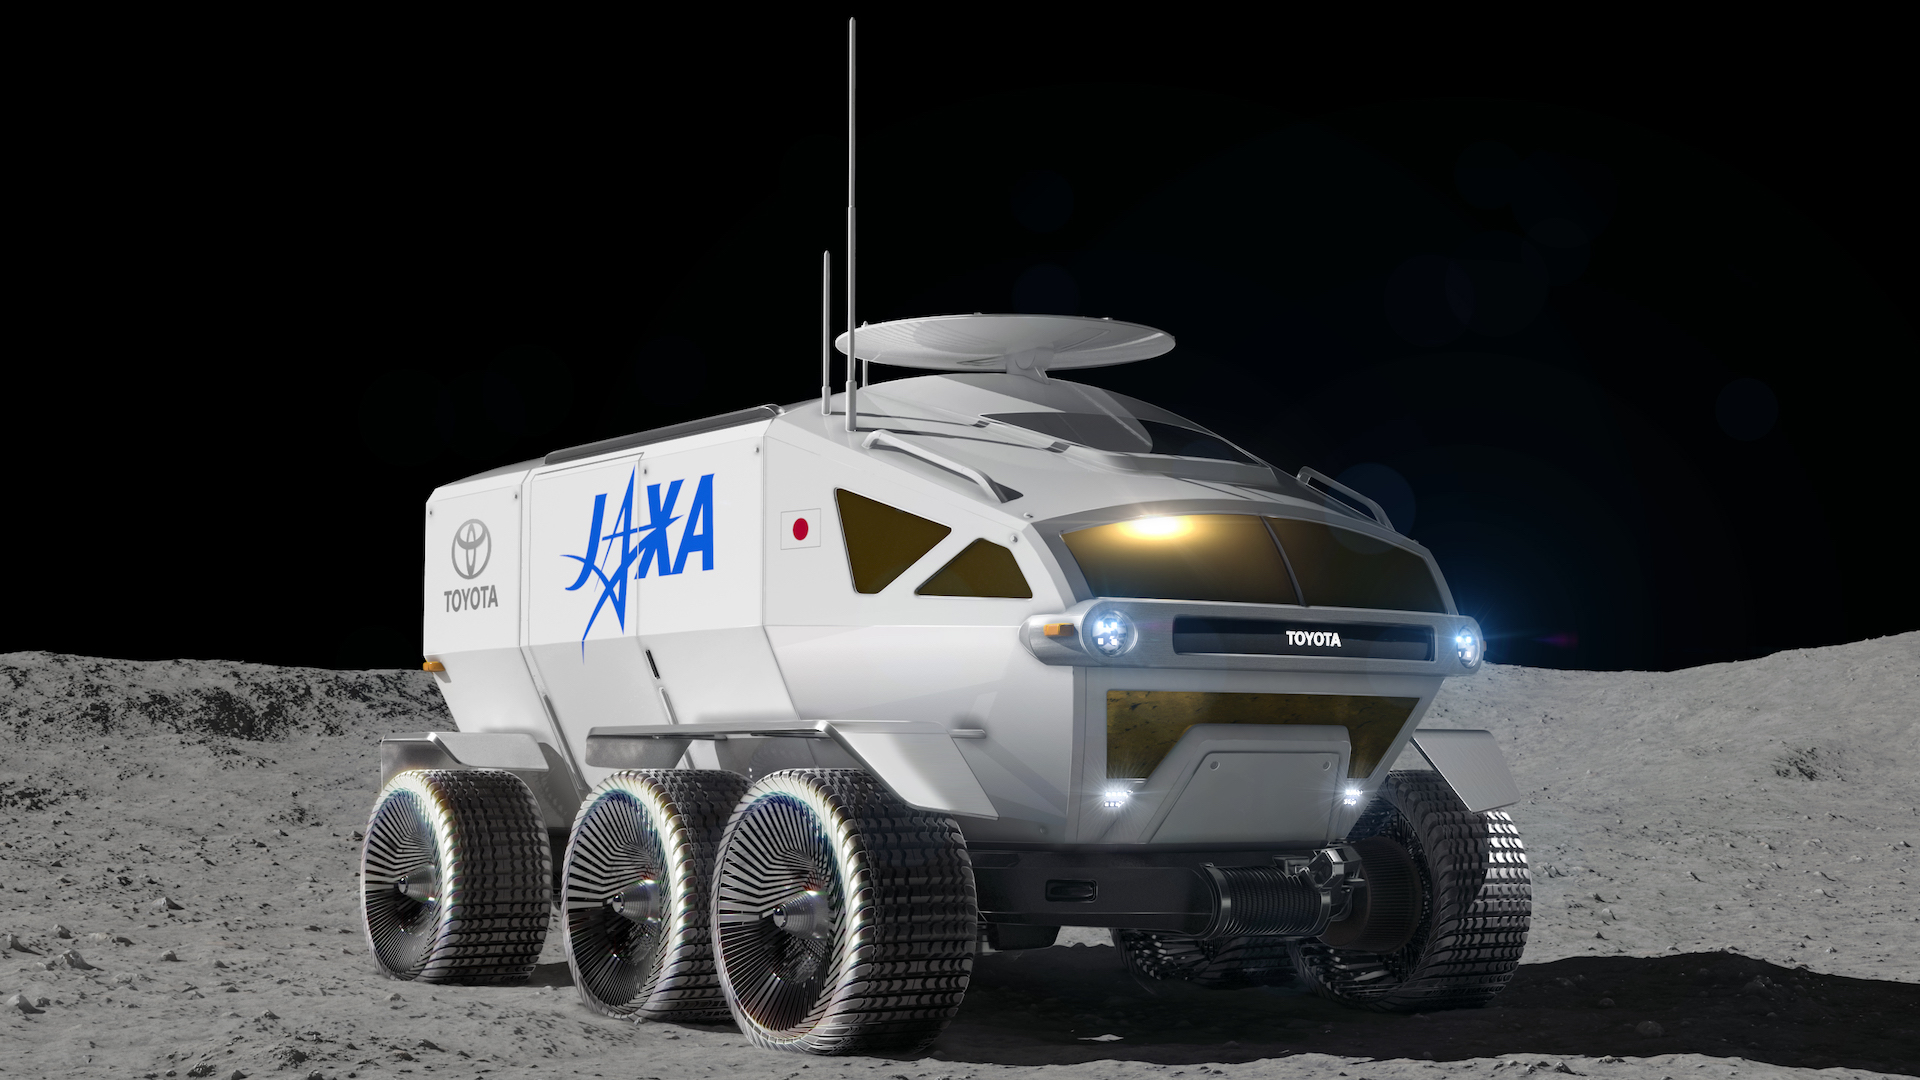 Toyota Lunar Cruiser could take hydrogen fuel-cell tech to the moon